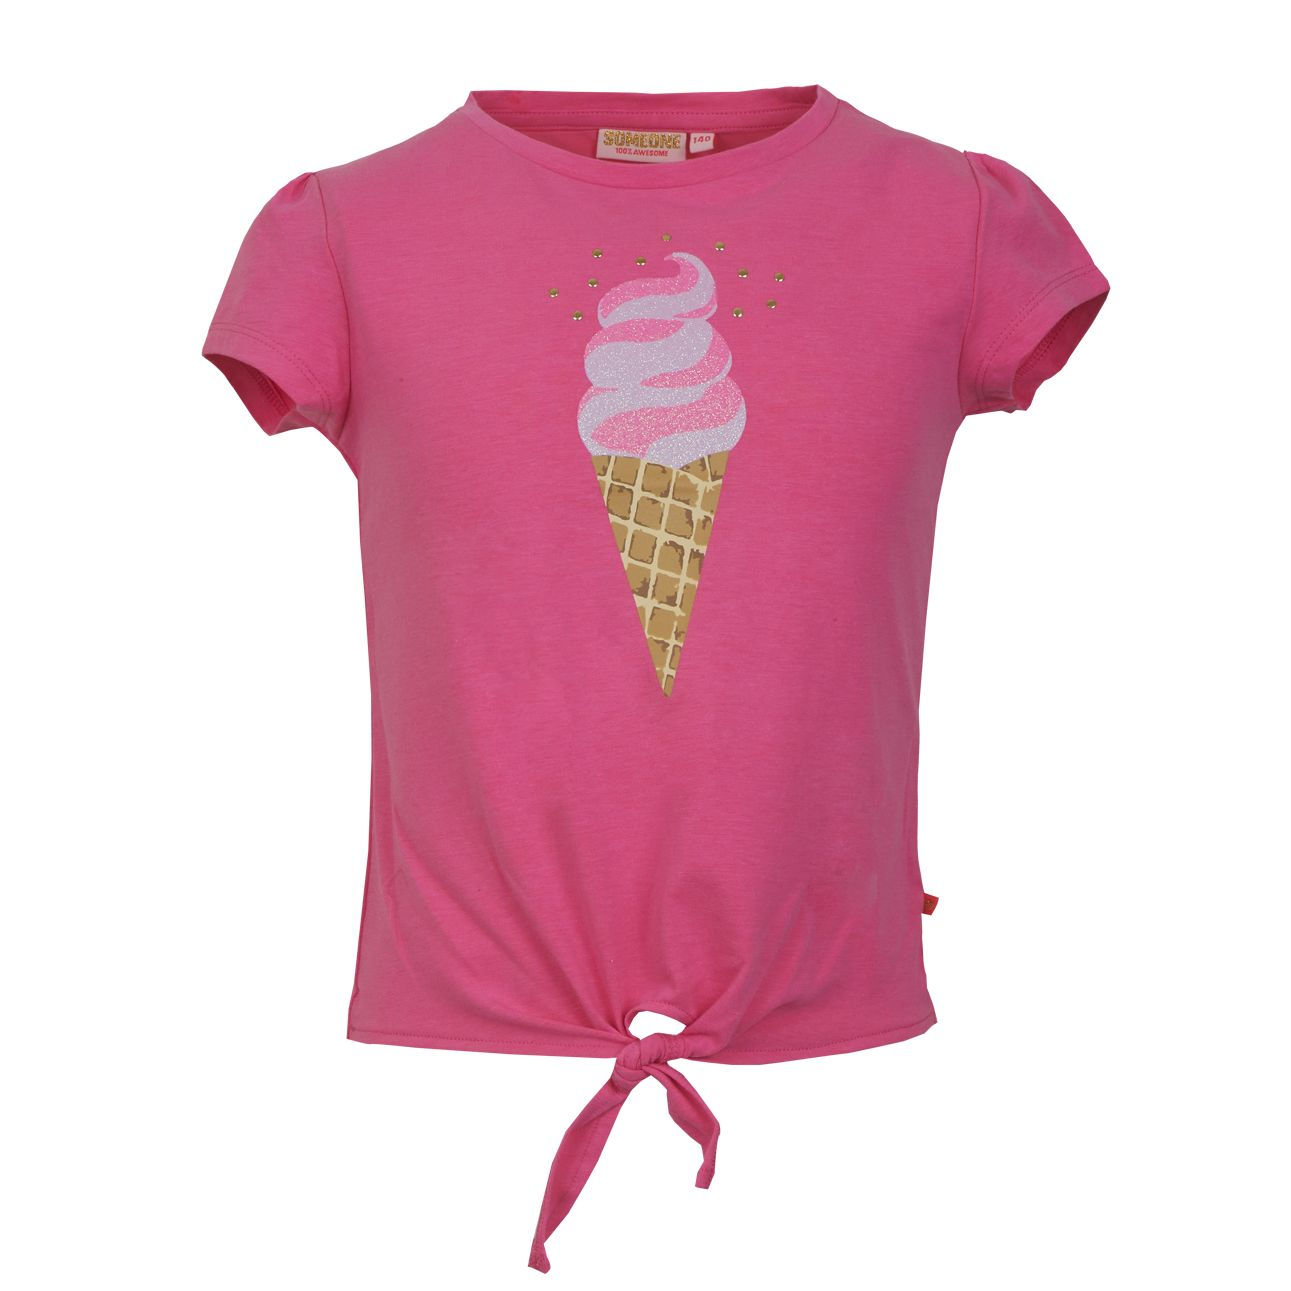 T-Shirt Eis 104 Pink SOMEONE 100% Awesome